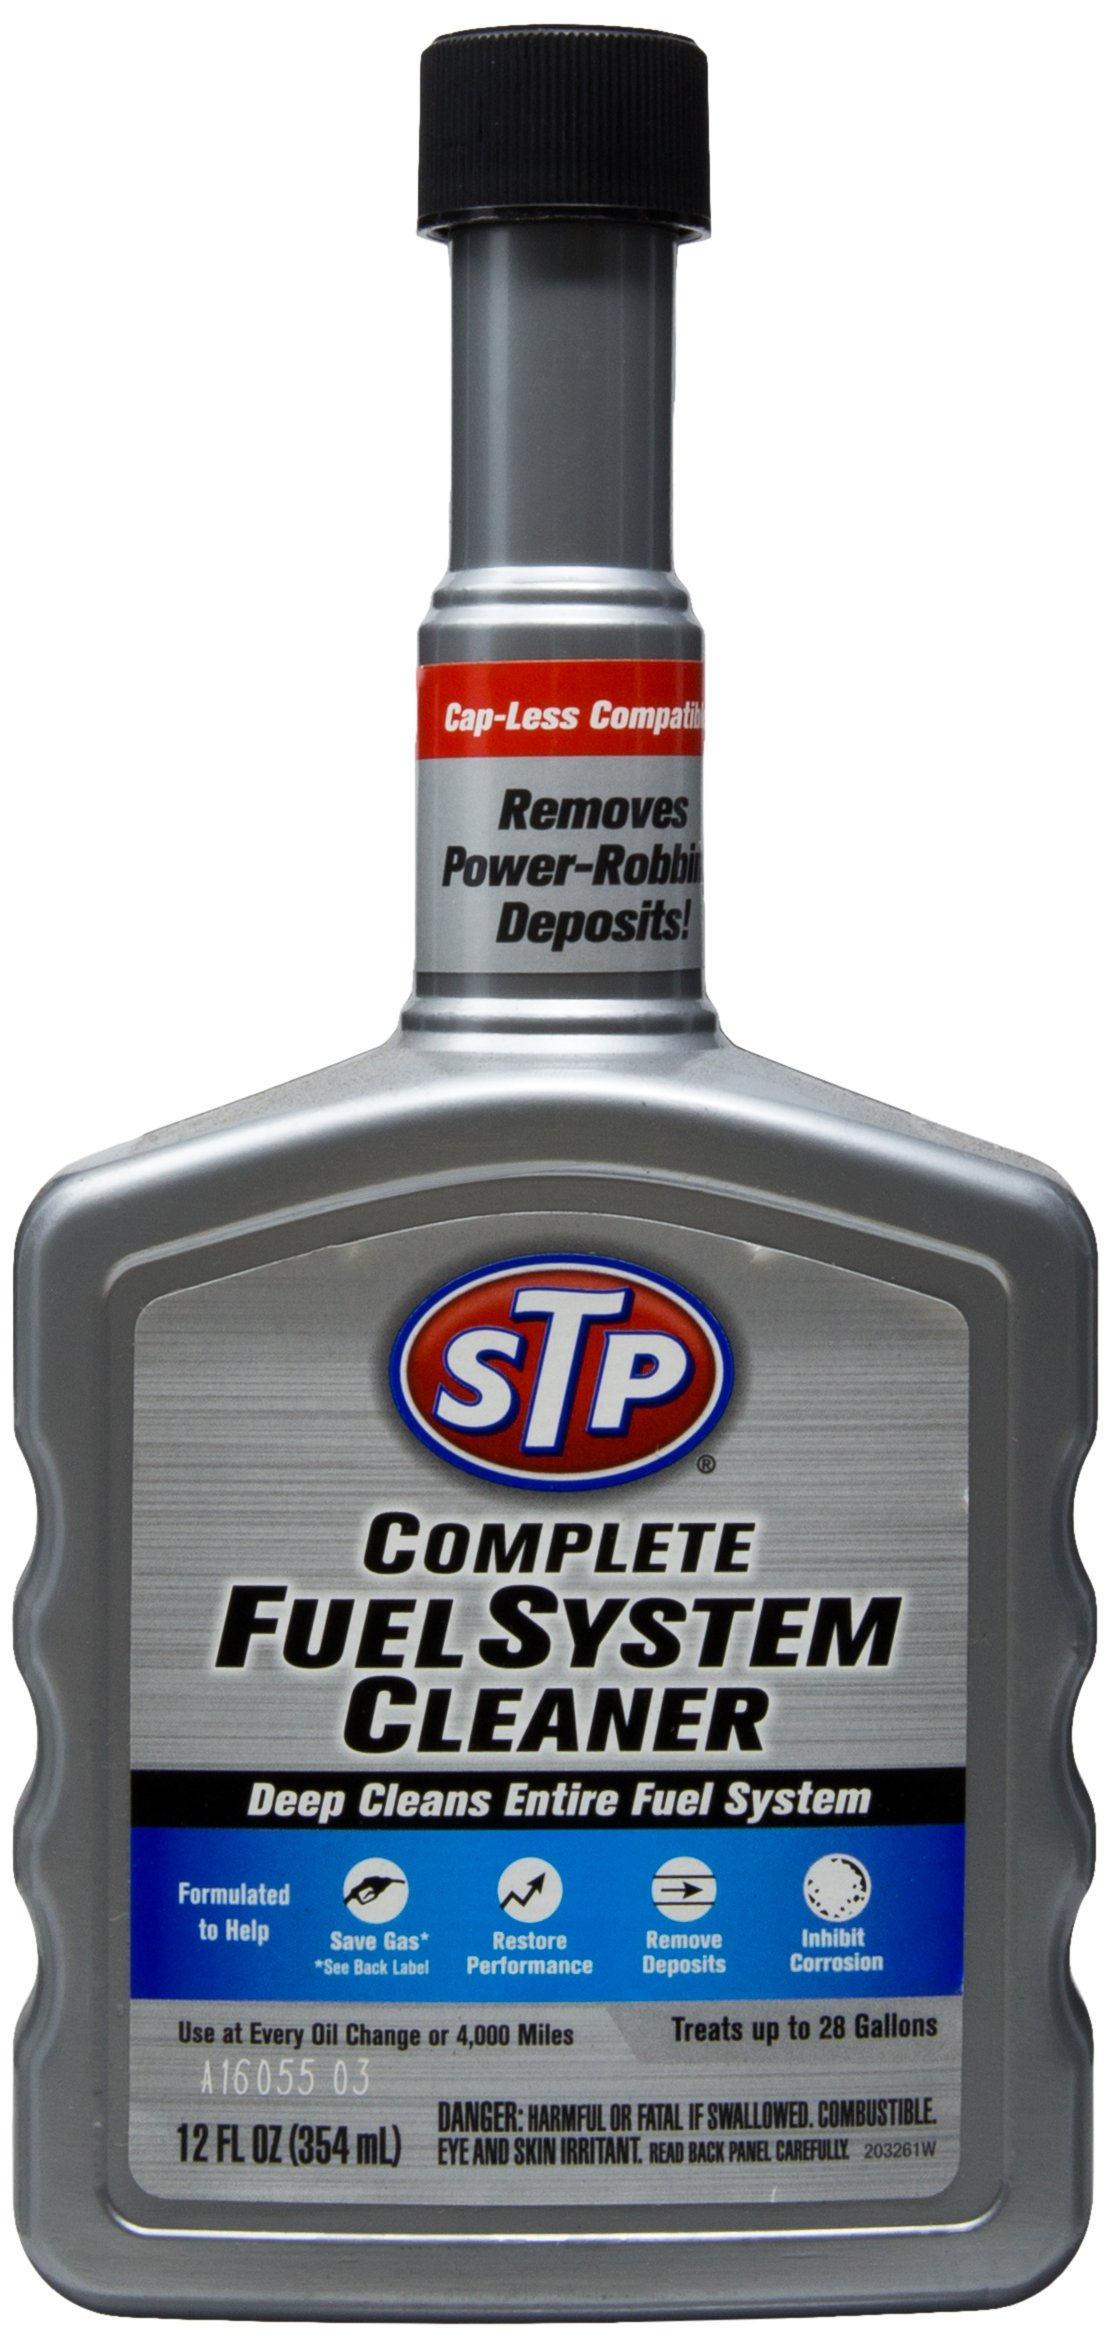 STP Complete Fuel System Cleaner (12 Fluid Ounces), 18025G by STP